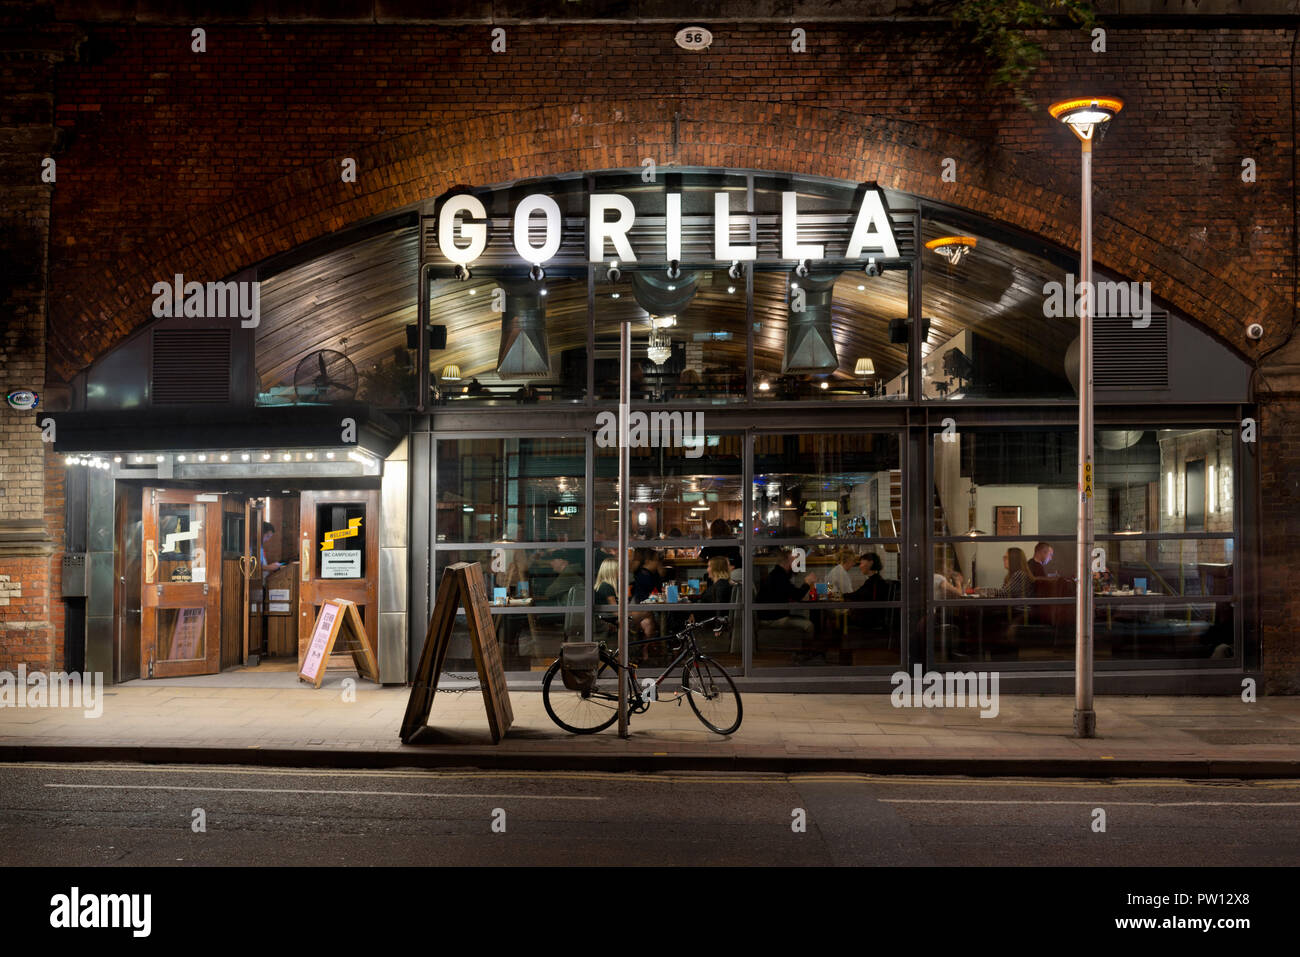 Gorilla bar located on Whitworth Street in Manchester city centre, UK. - Stock Image